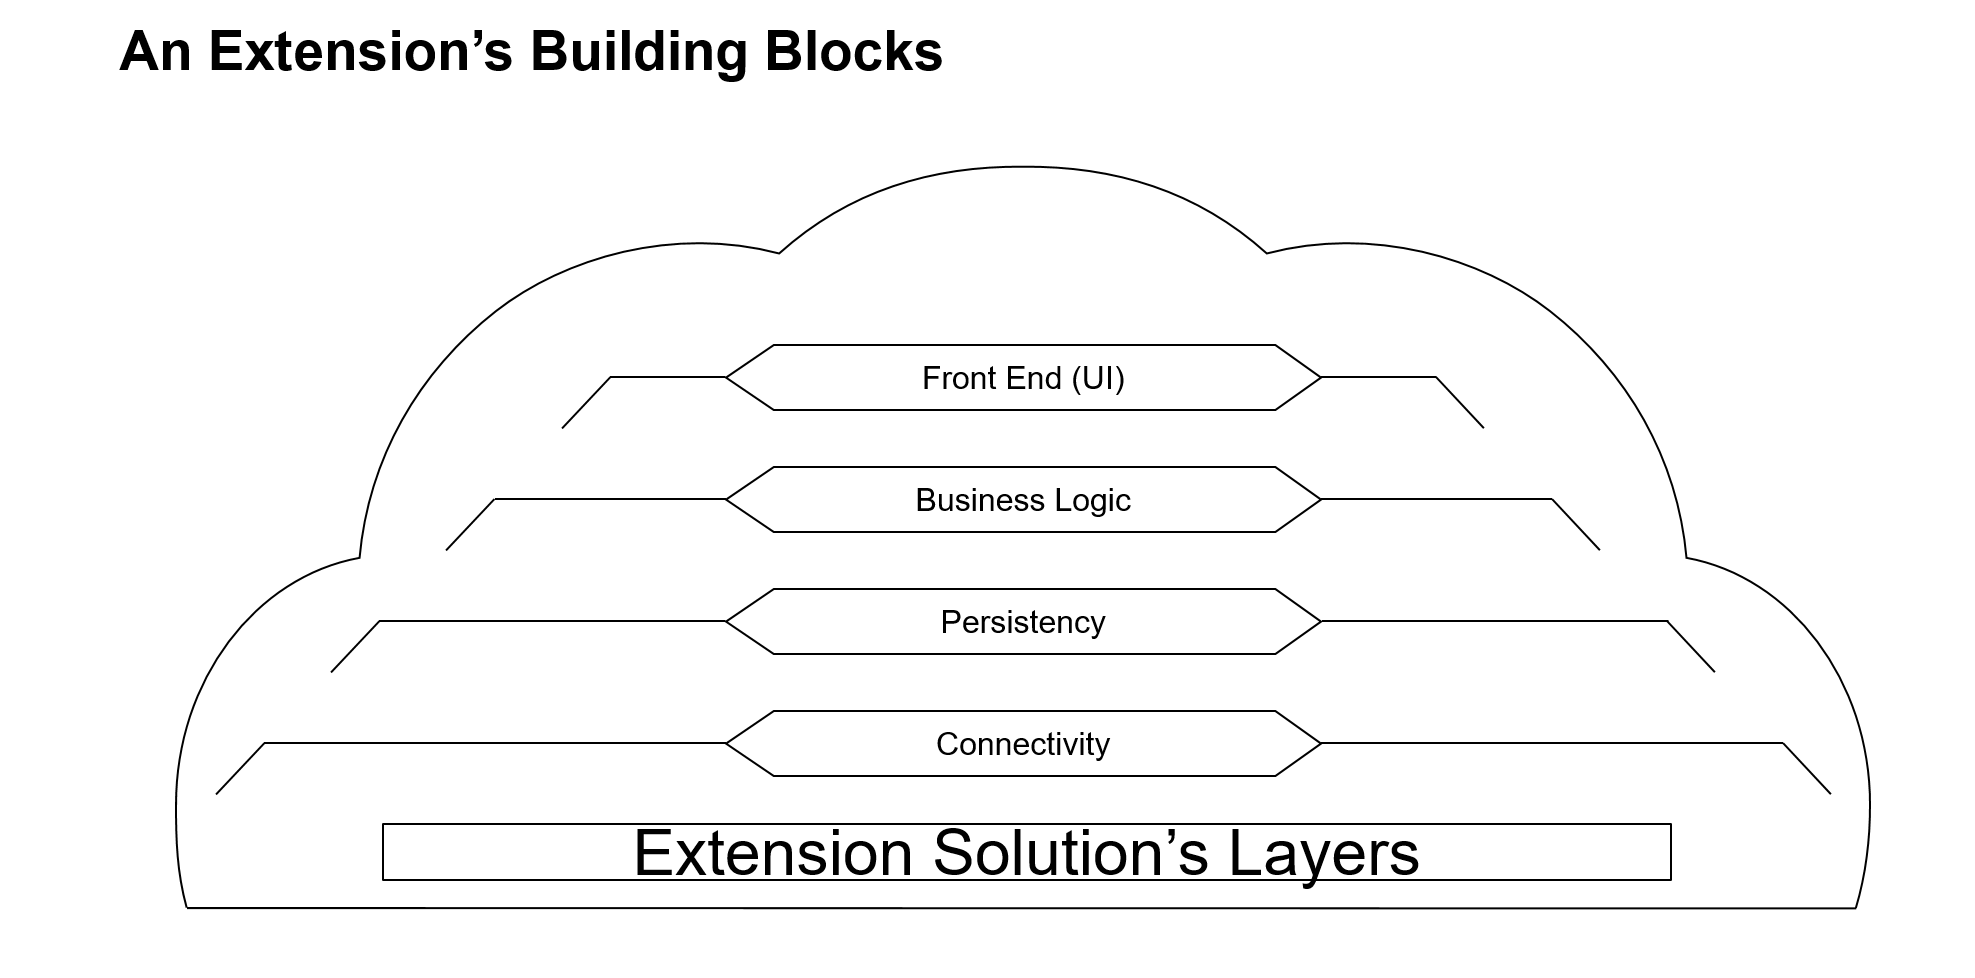 Overview Of Successfactors Extensions On Sap Cloud Platform Blogs Logic Diagram Tool An Extension Application Consists Several Layers It Usually Has A Front End Ui Layer Decoupled From Backend Services Business Persistency